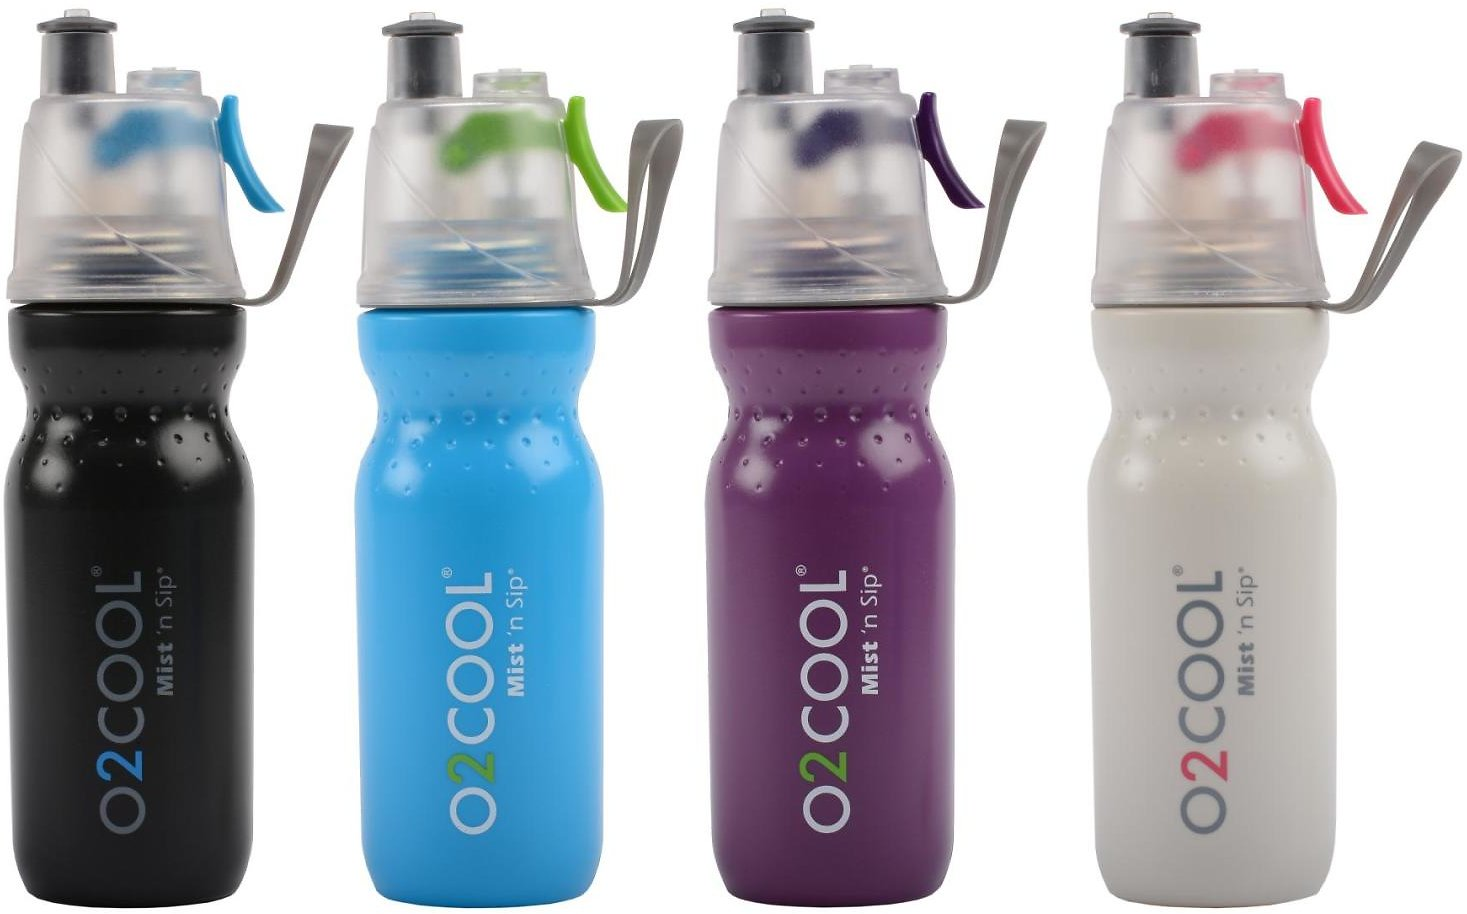 O2Cool 6-Pack ArcticSqueeze Classic 20-Ounce Mist 'N Sip Water Bottles